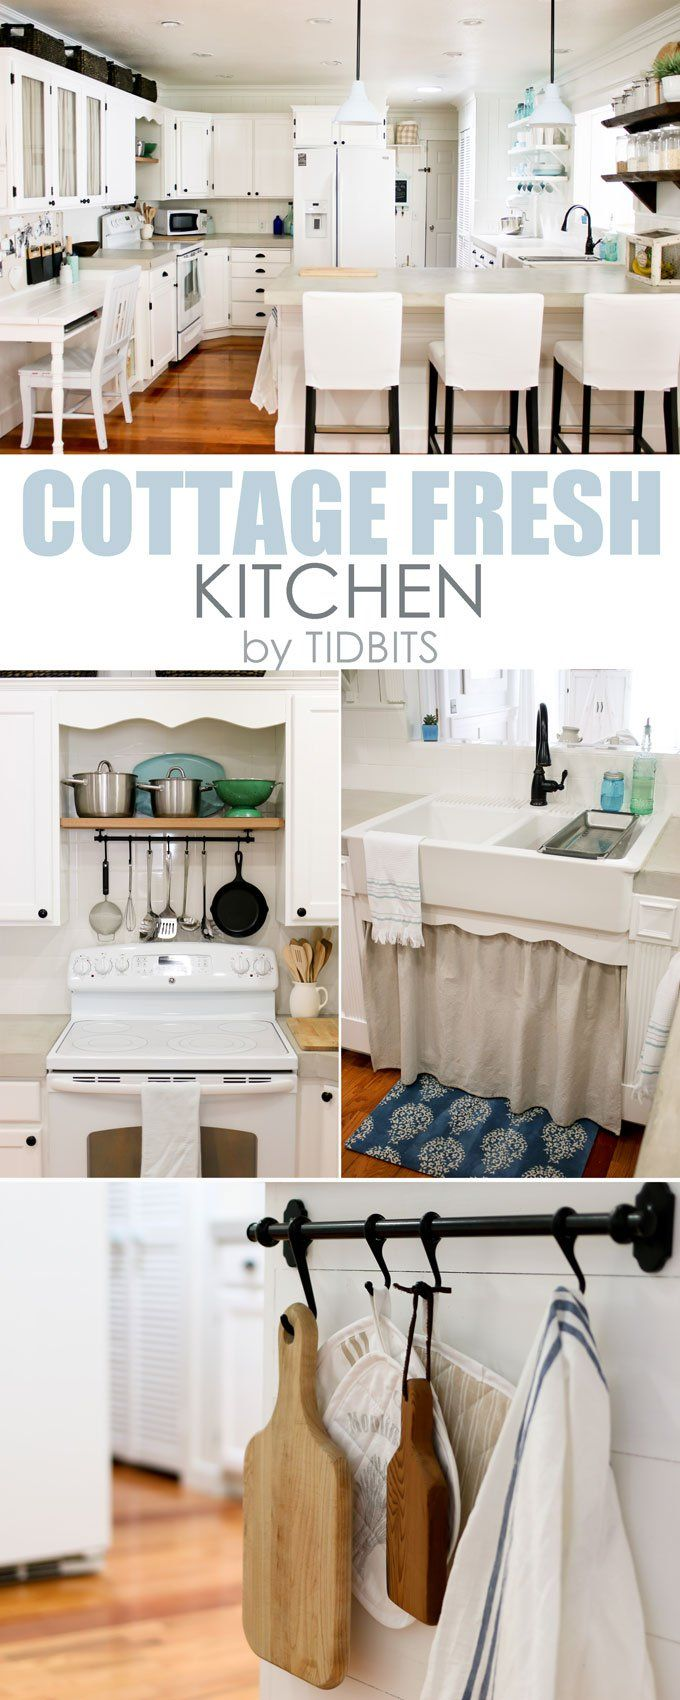 159 best ROOMS - Kitchen images on Pinterest | Kitchens, Before ...